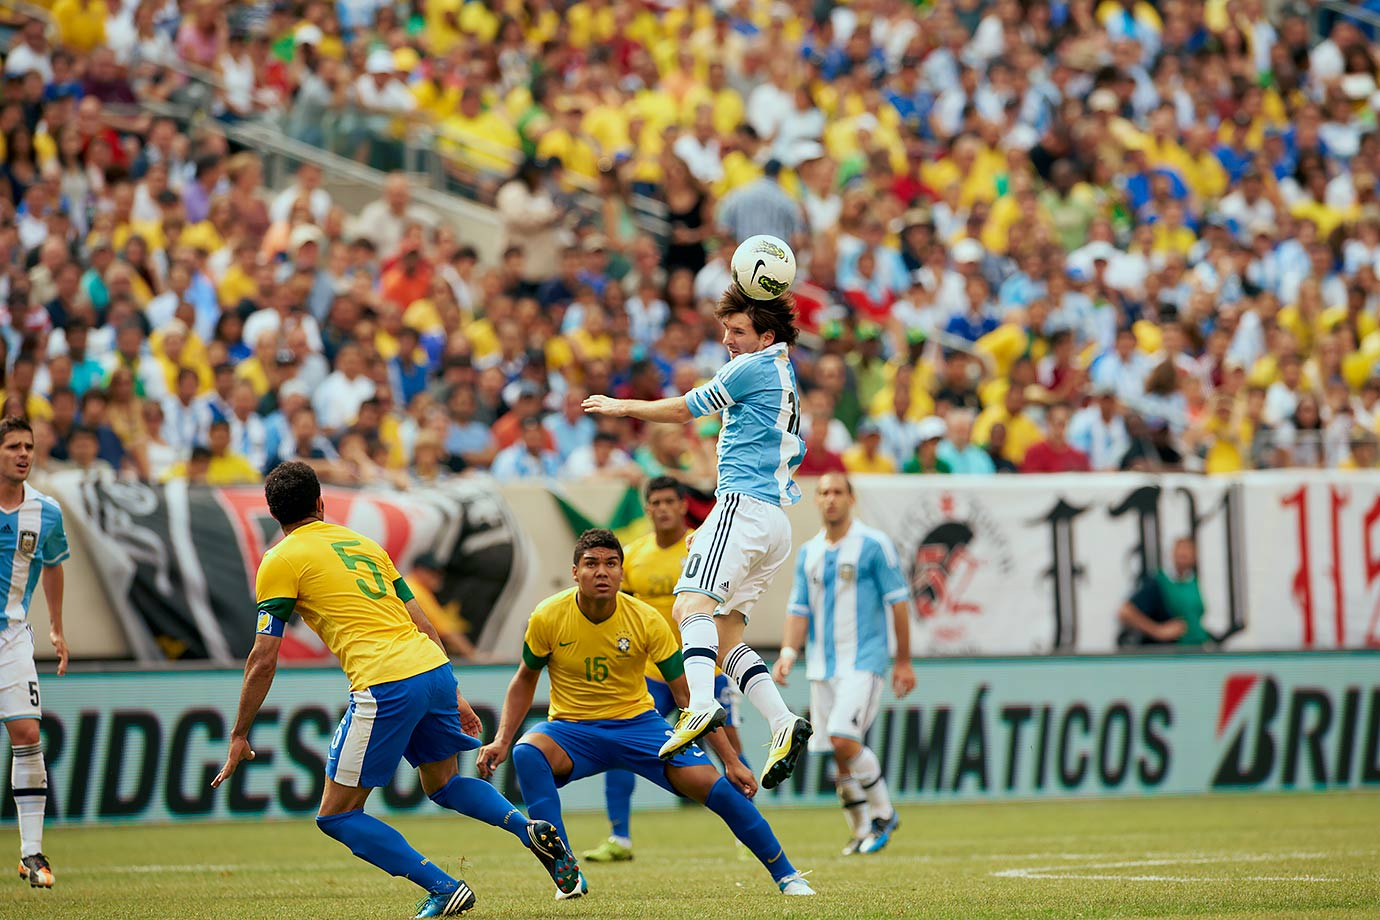 Argentina's Lionel Messi makes a header during an International Friendly against Brazil on June 9, 2012 at MetLife Stadium in East Rutherford, N.J.